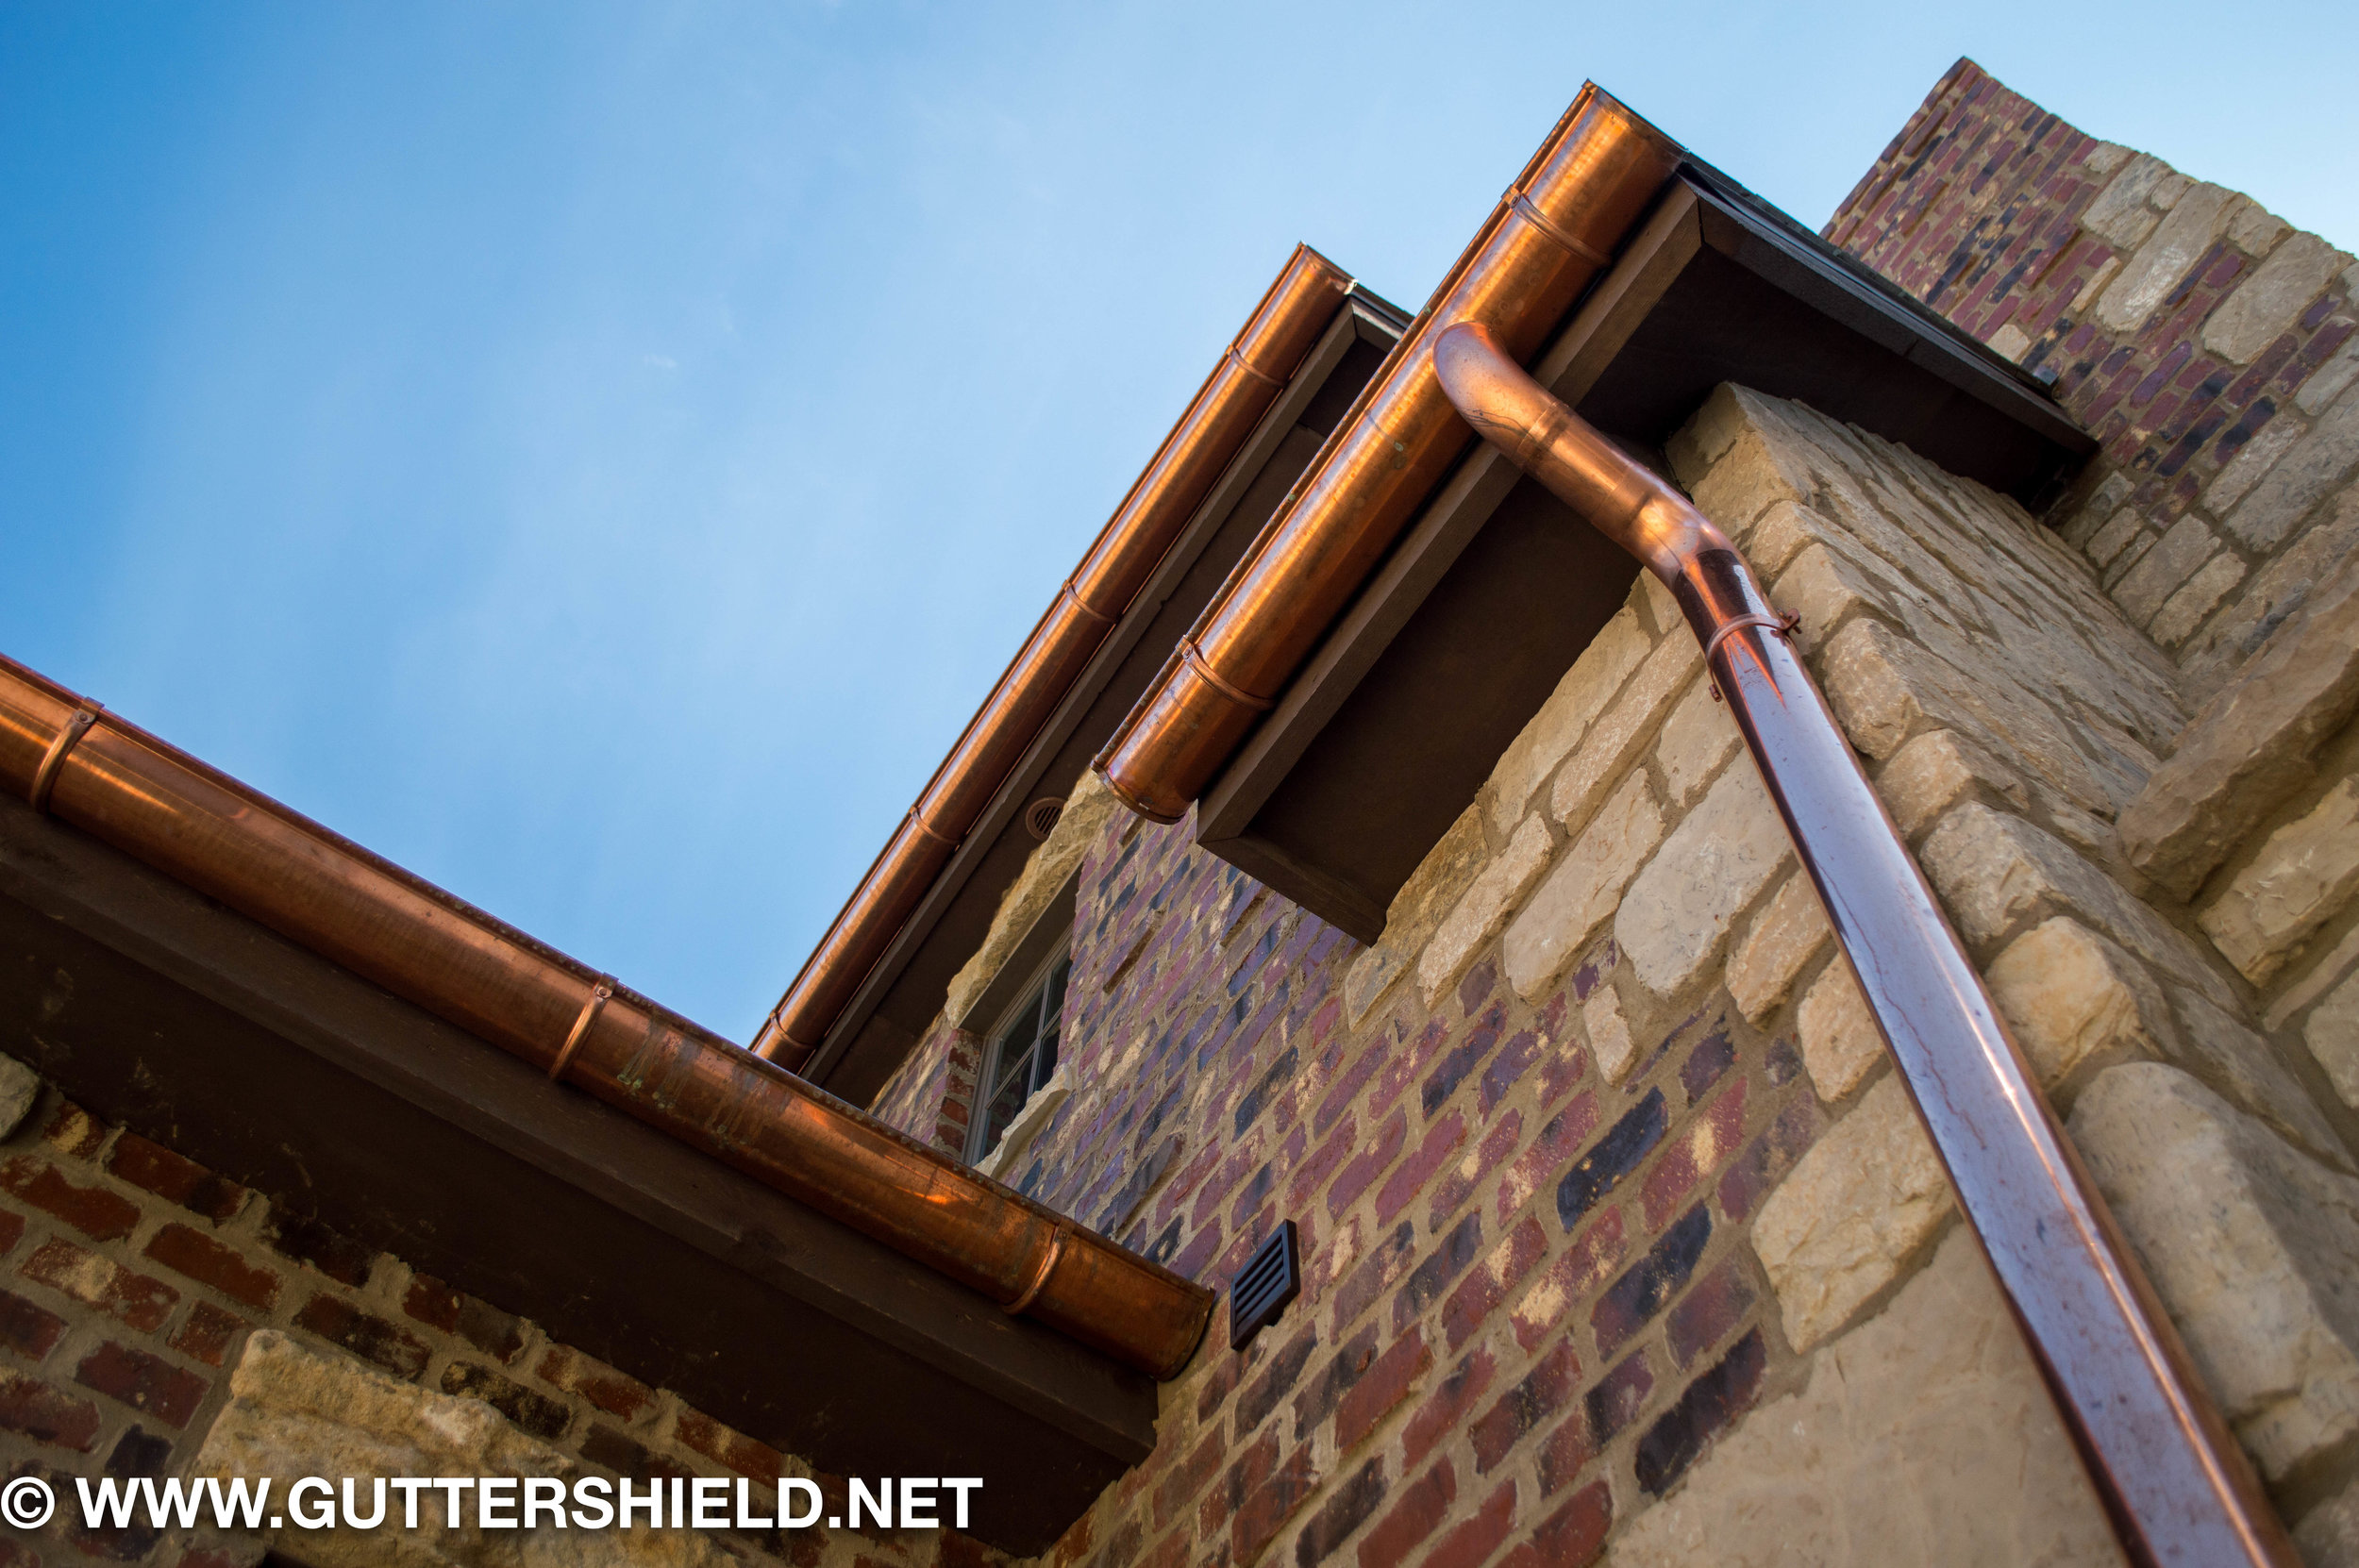 copper-half-round-gutters-lake-house-lifestyle.jpg